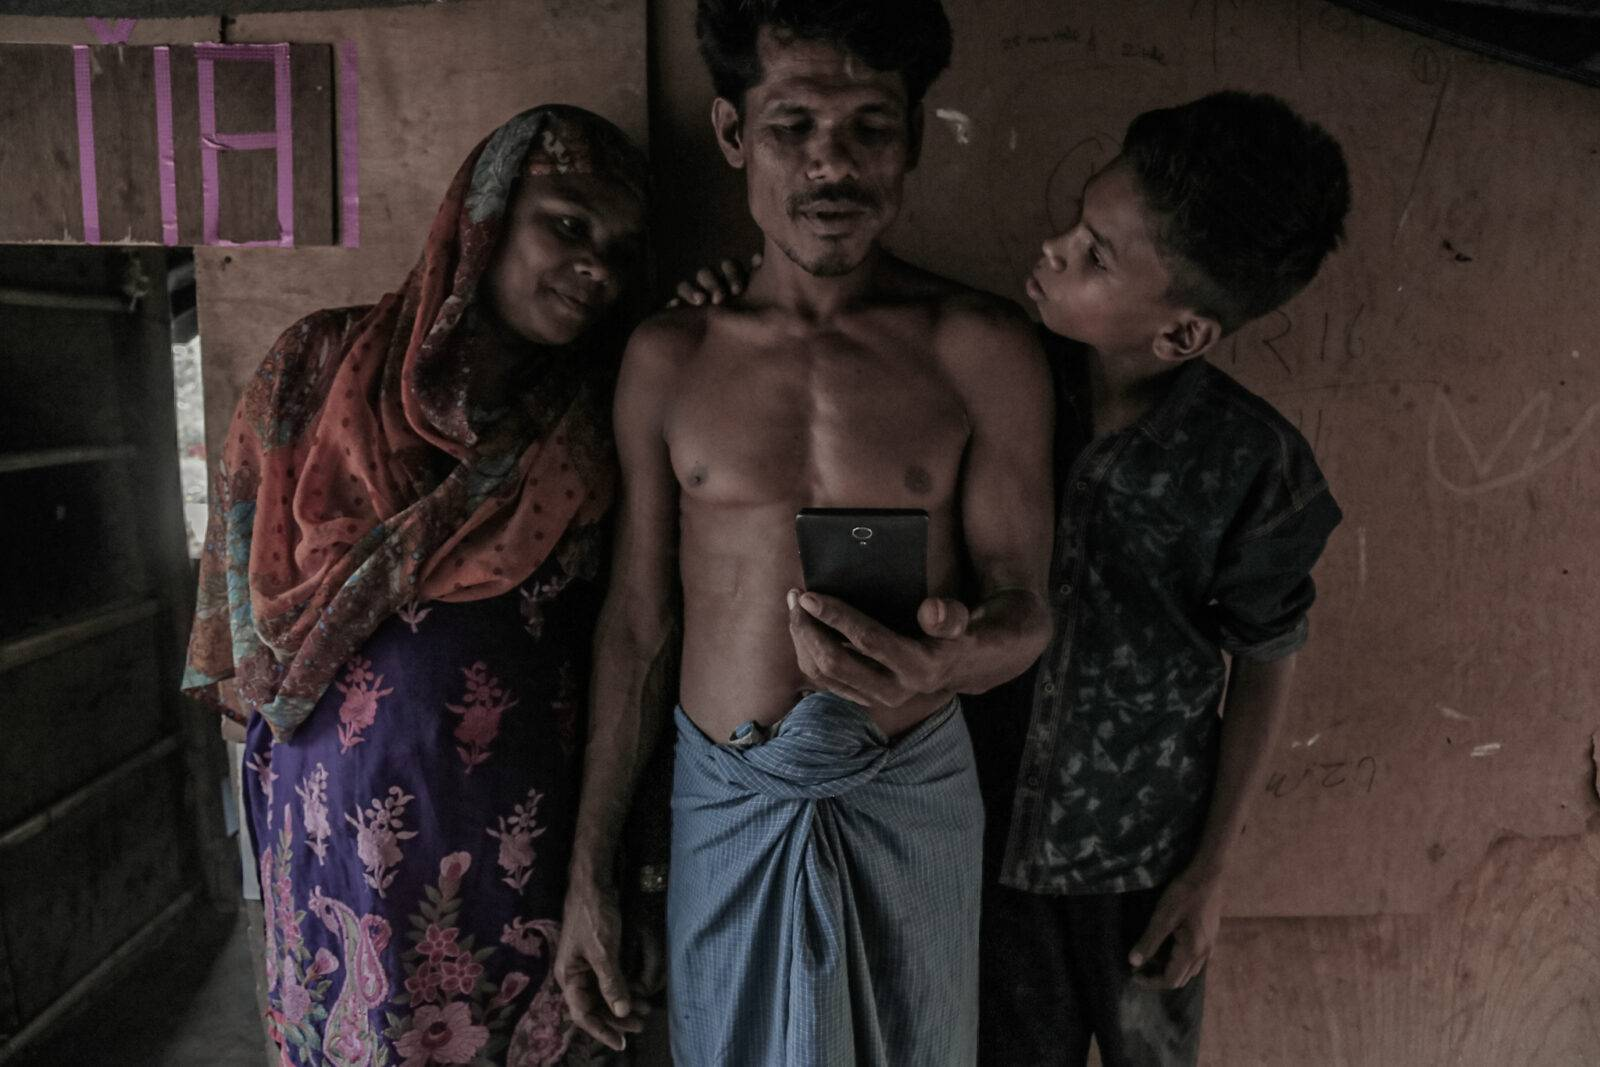 A Rohingya couple with their young son. Their daughter lives in Cox Bazaar, Bangladesh where she got married after she managed to leave Myanmar in 2012.